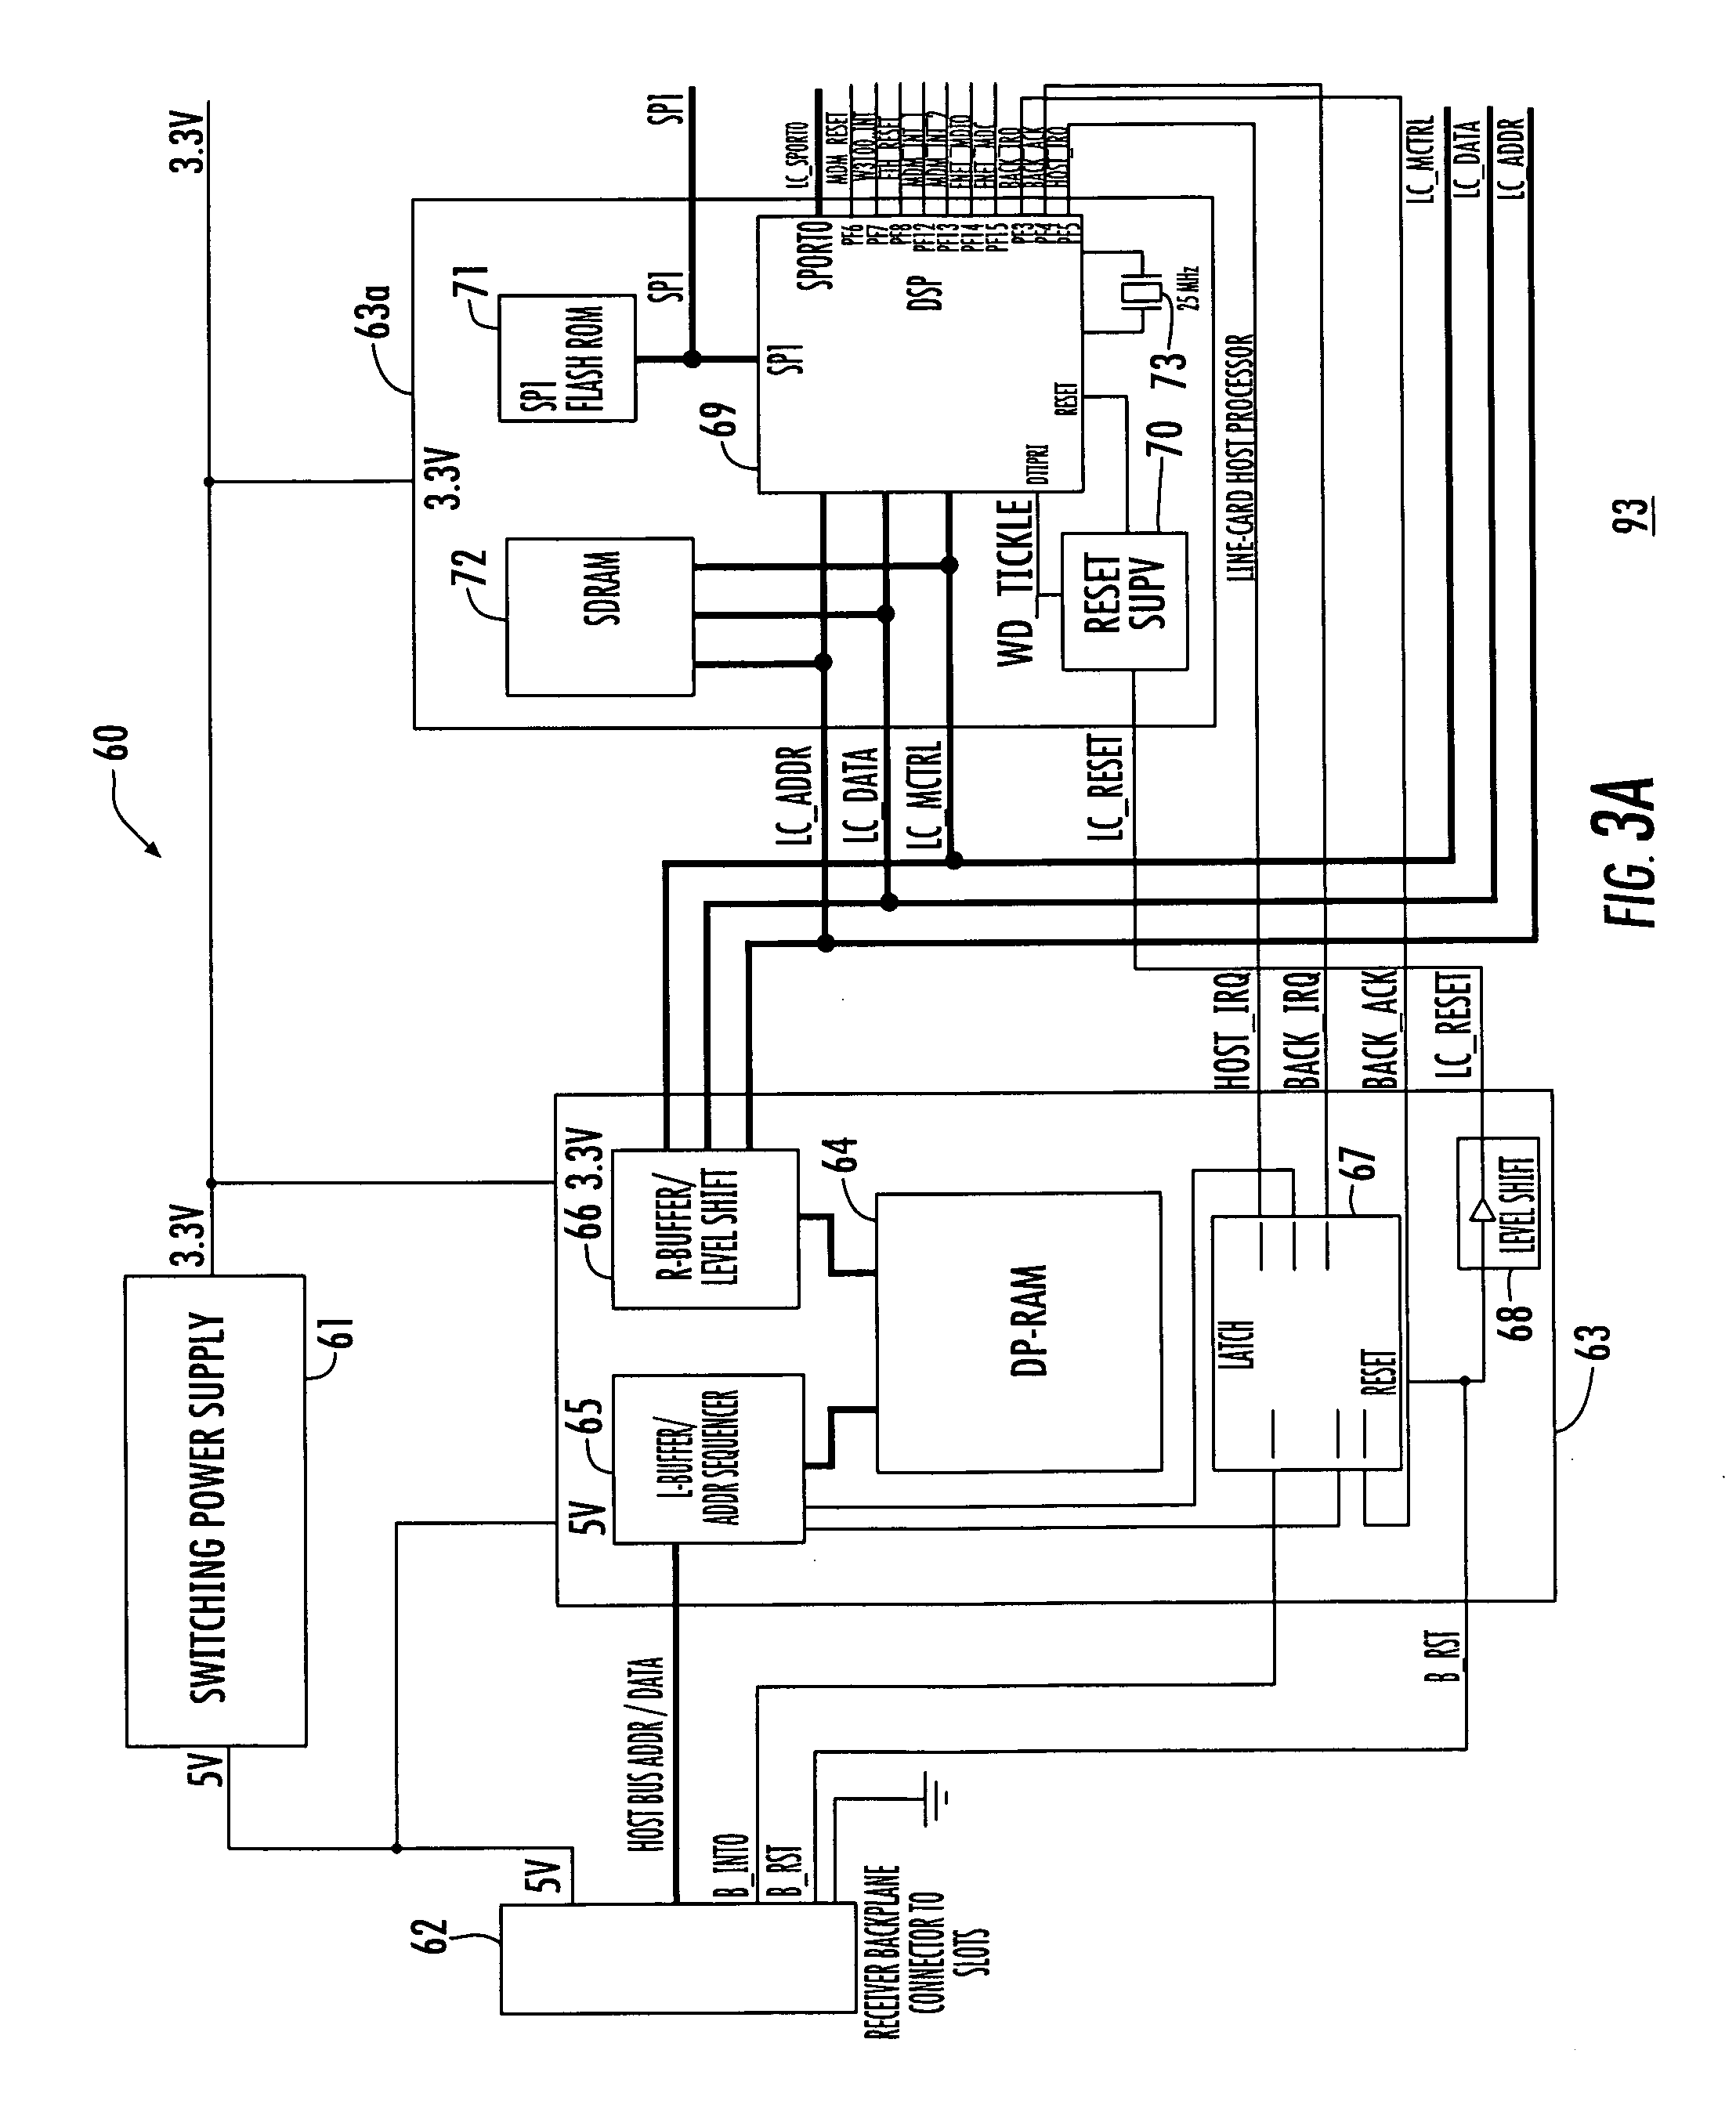 US20090058630A1 20090305 D00004?resize\\\\\\\=665%2C814 goodman sequencer wiring diagram fan carrier heat pump schematic coleman eb15b wiring diagram at bayanpartner.co